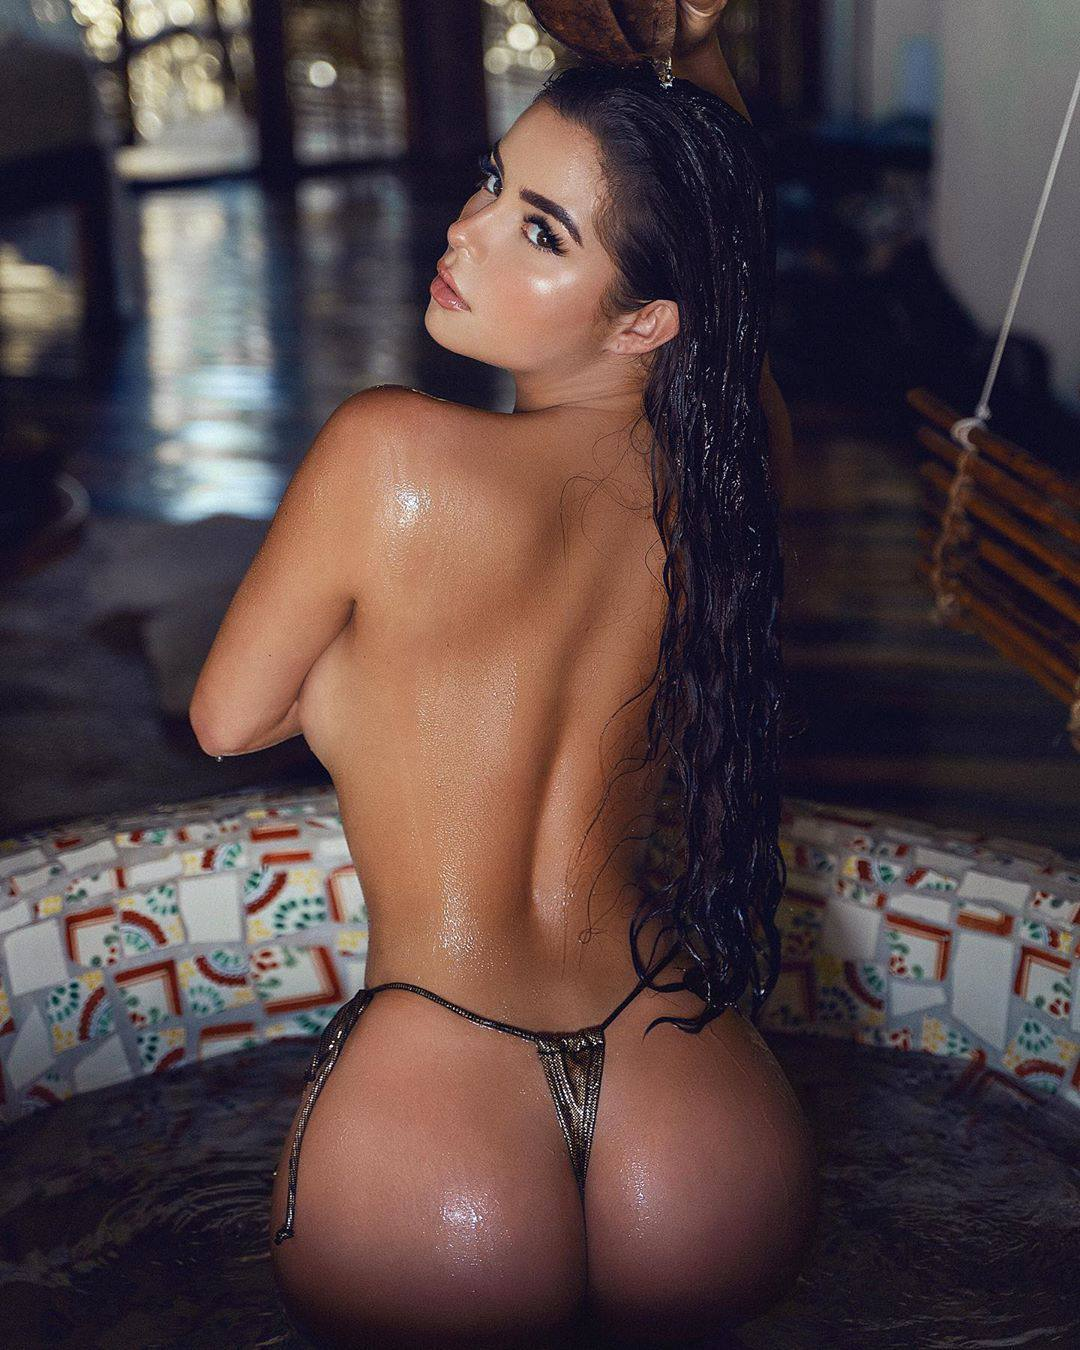 Demi Rose Mawby Magnificent Curvy Body In Sexy Topless Photoshoot 0002